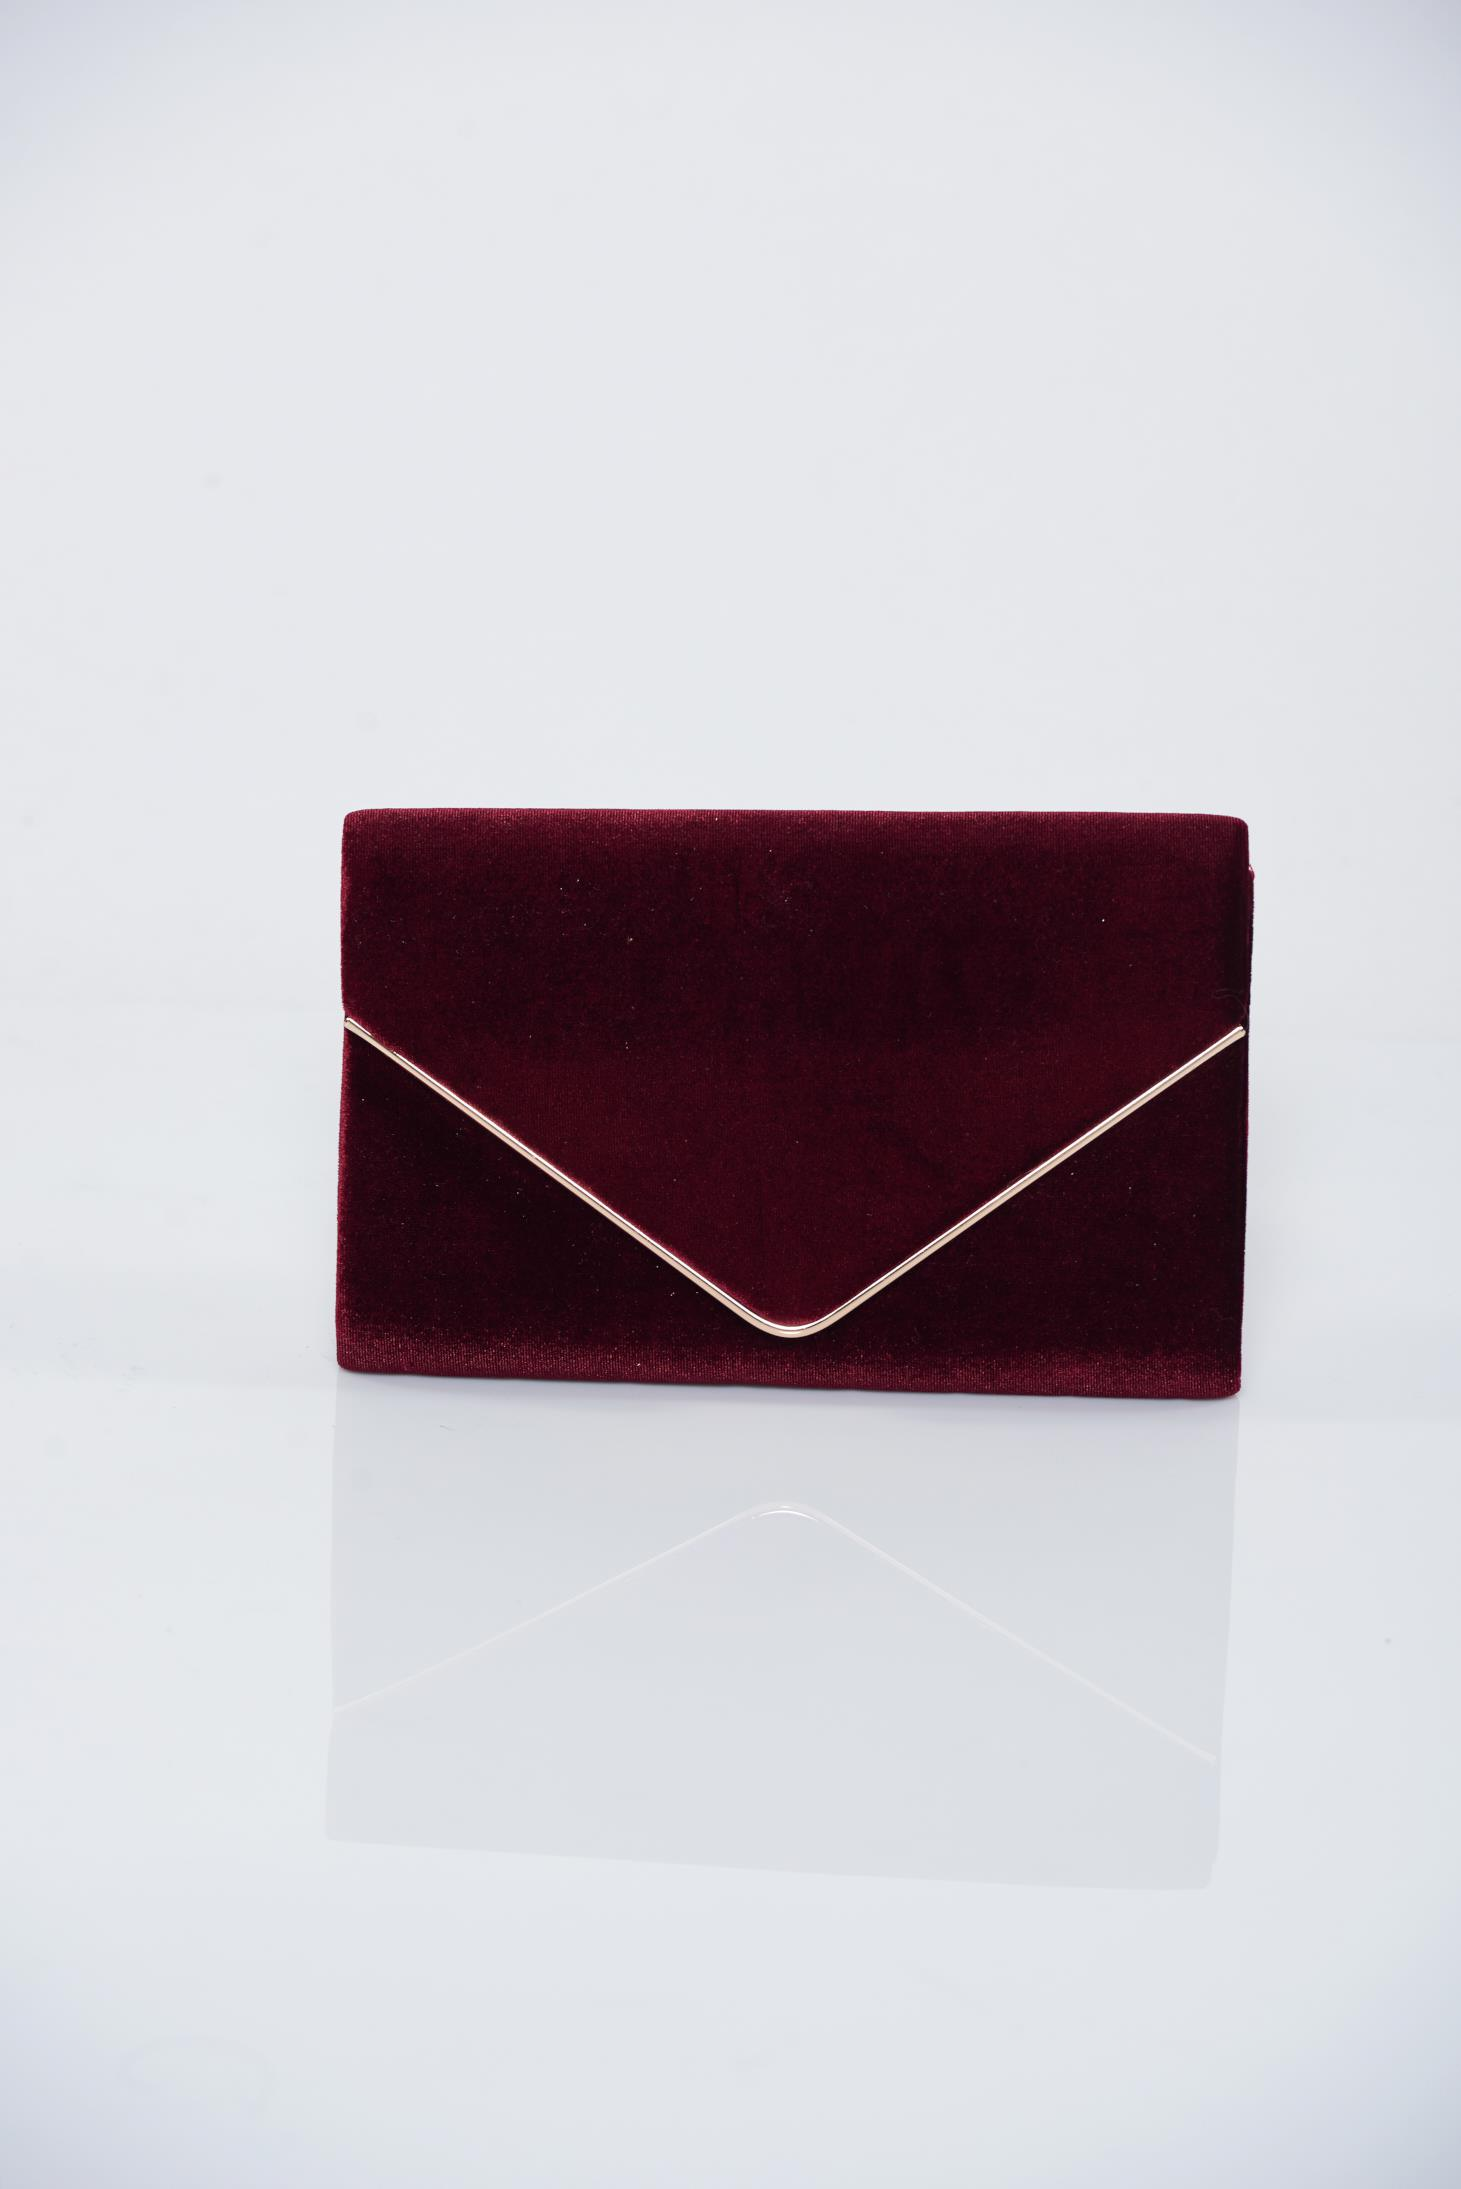 details for new & pre-owned designer purchase newest Burgundy clutch bag accessorized with chain